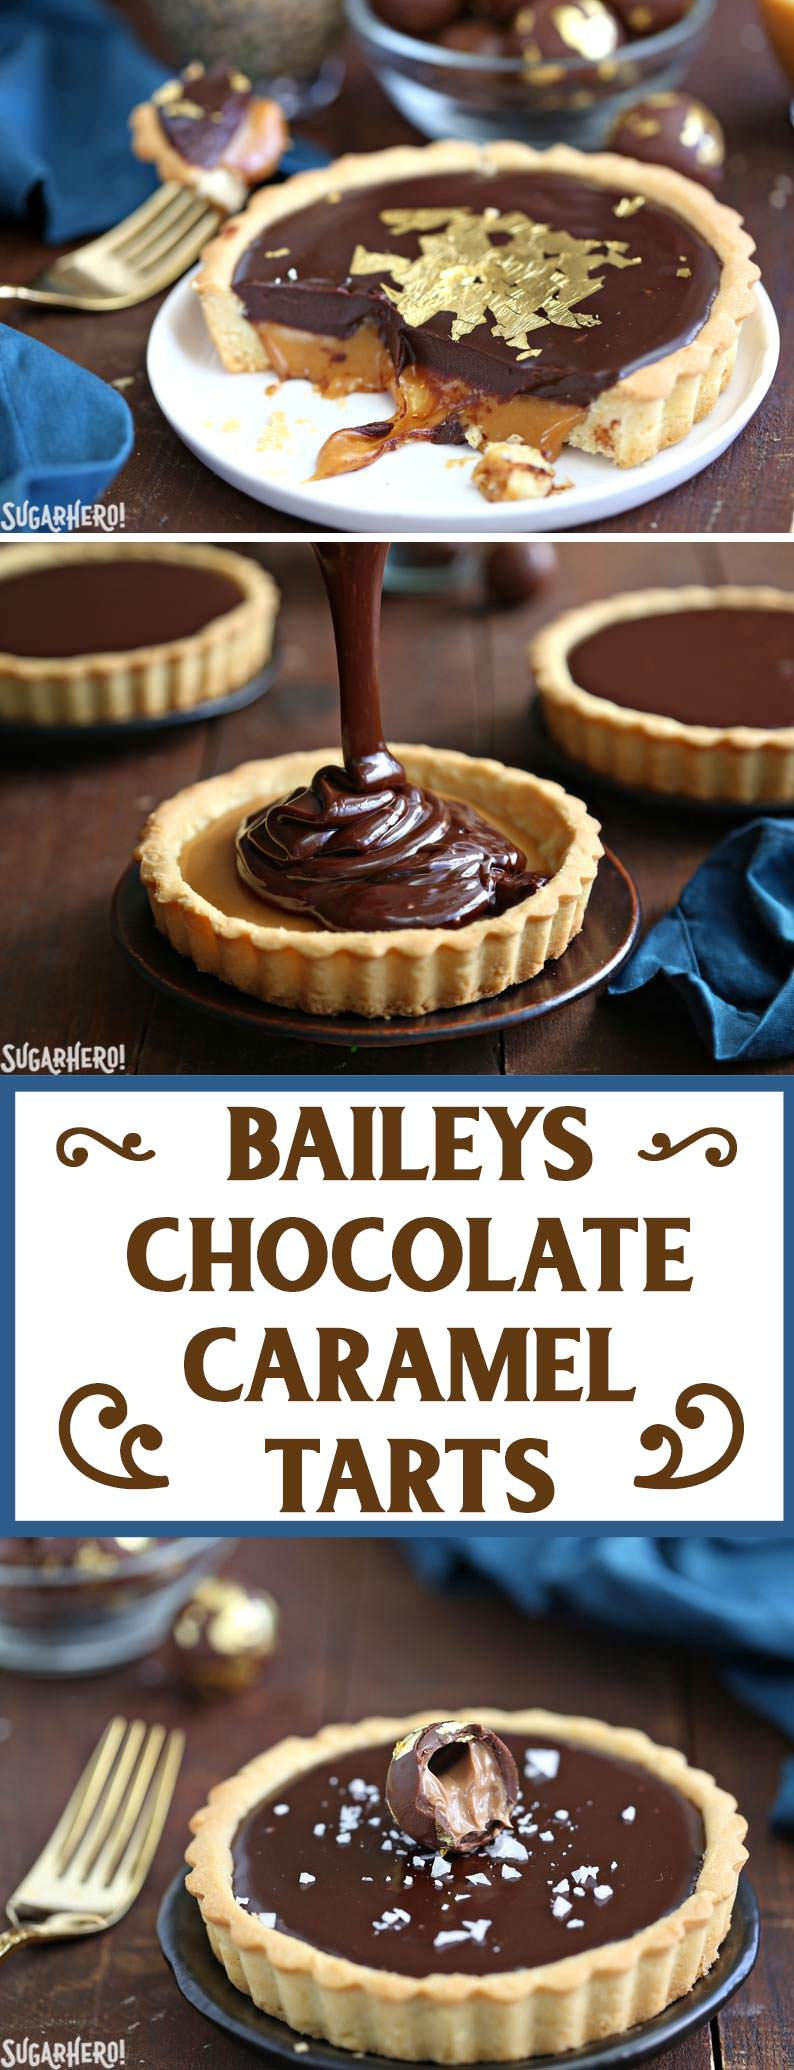 Chocolate Caramel Tarts are outrageously good! With their buttery tart ...